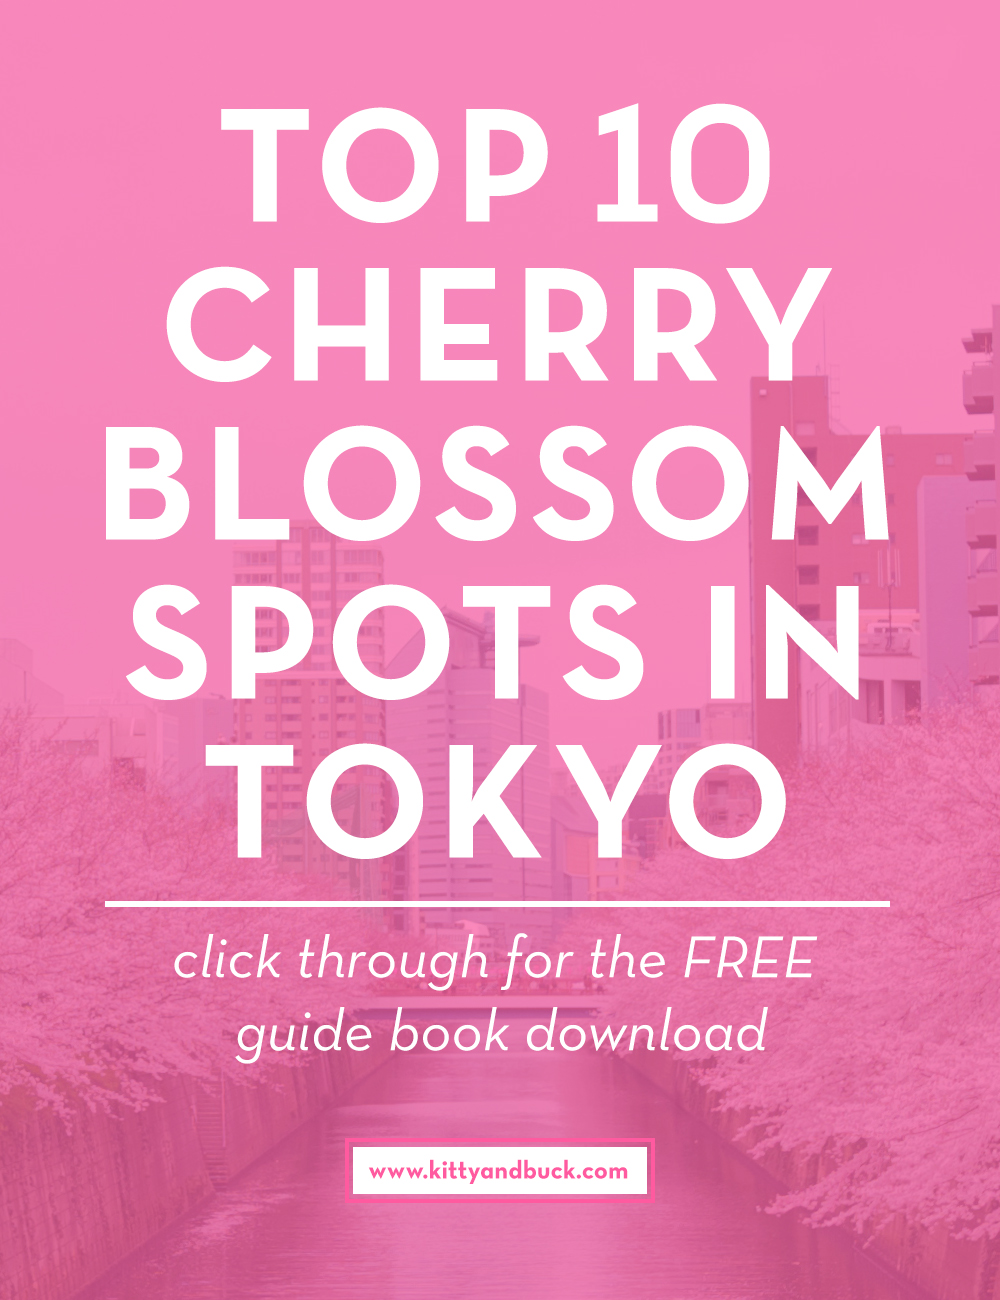 The Top 10 Cherry Blossom Spots in Tokyo - A FREE e-book from Kitty & Buck - click through to download this e-book for free, and see the most amazing cherry blossoms this spring in Tokyo! Includes pros and cons for each location and details on train lines and how to get there.